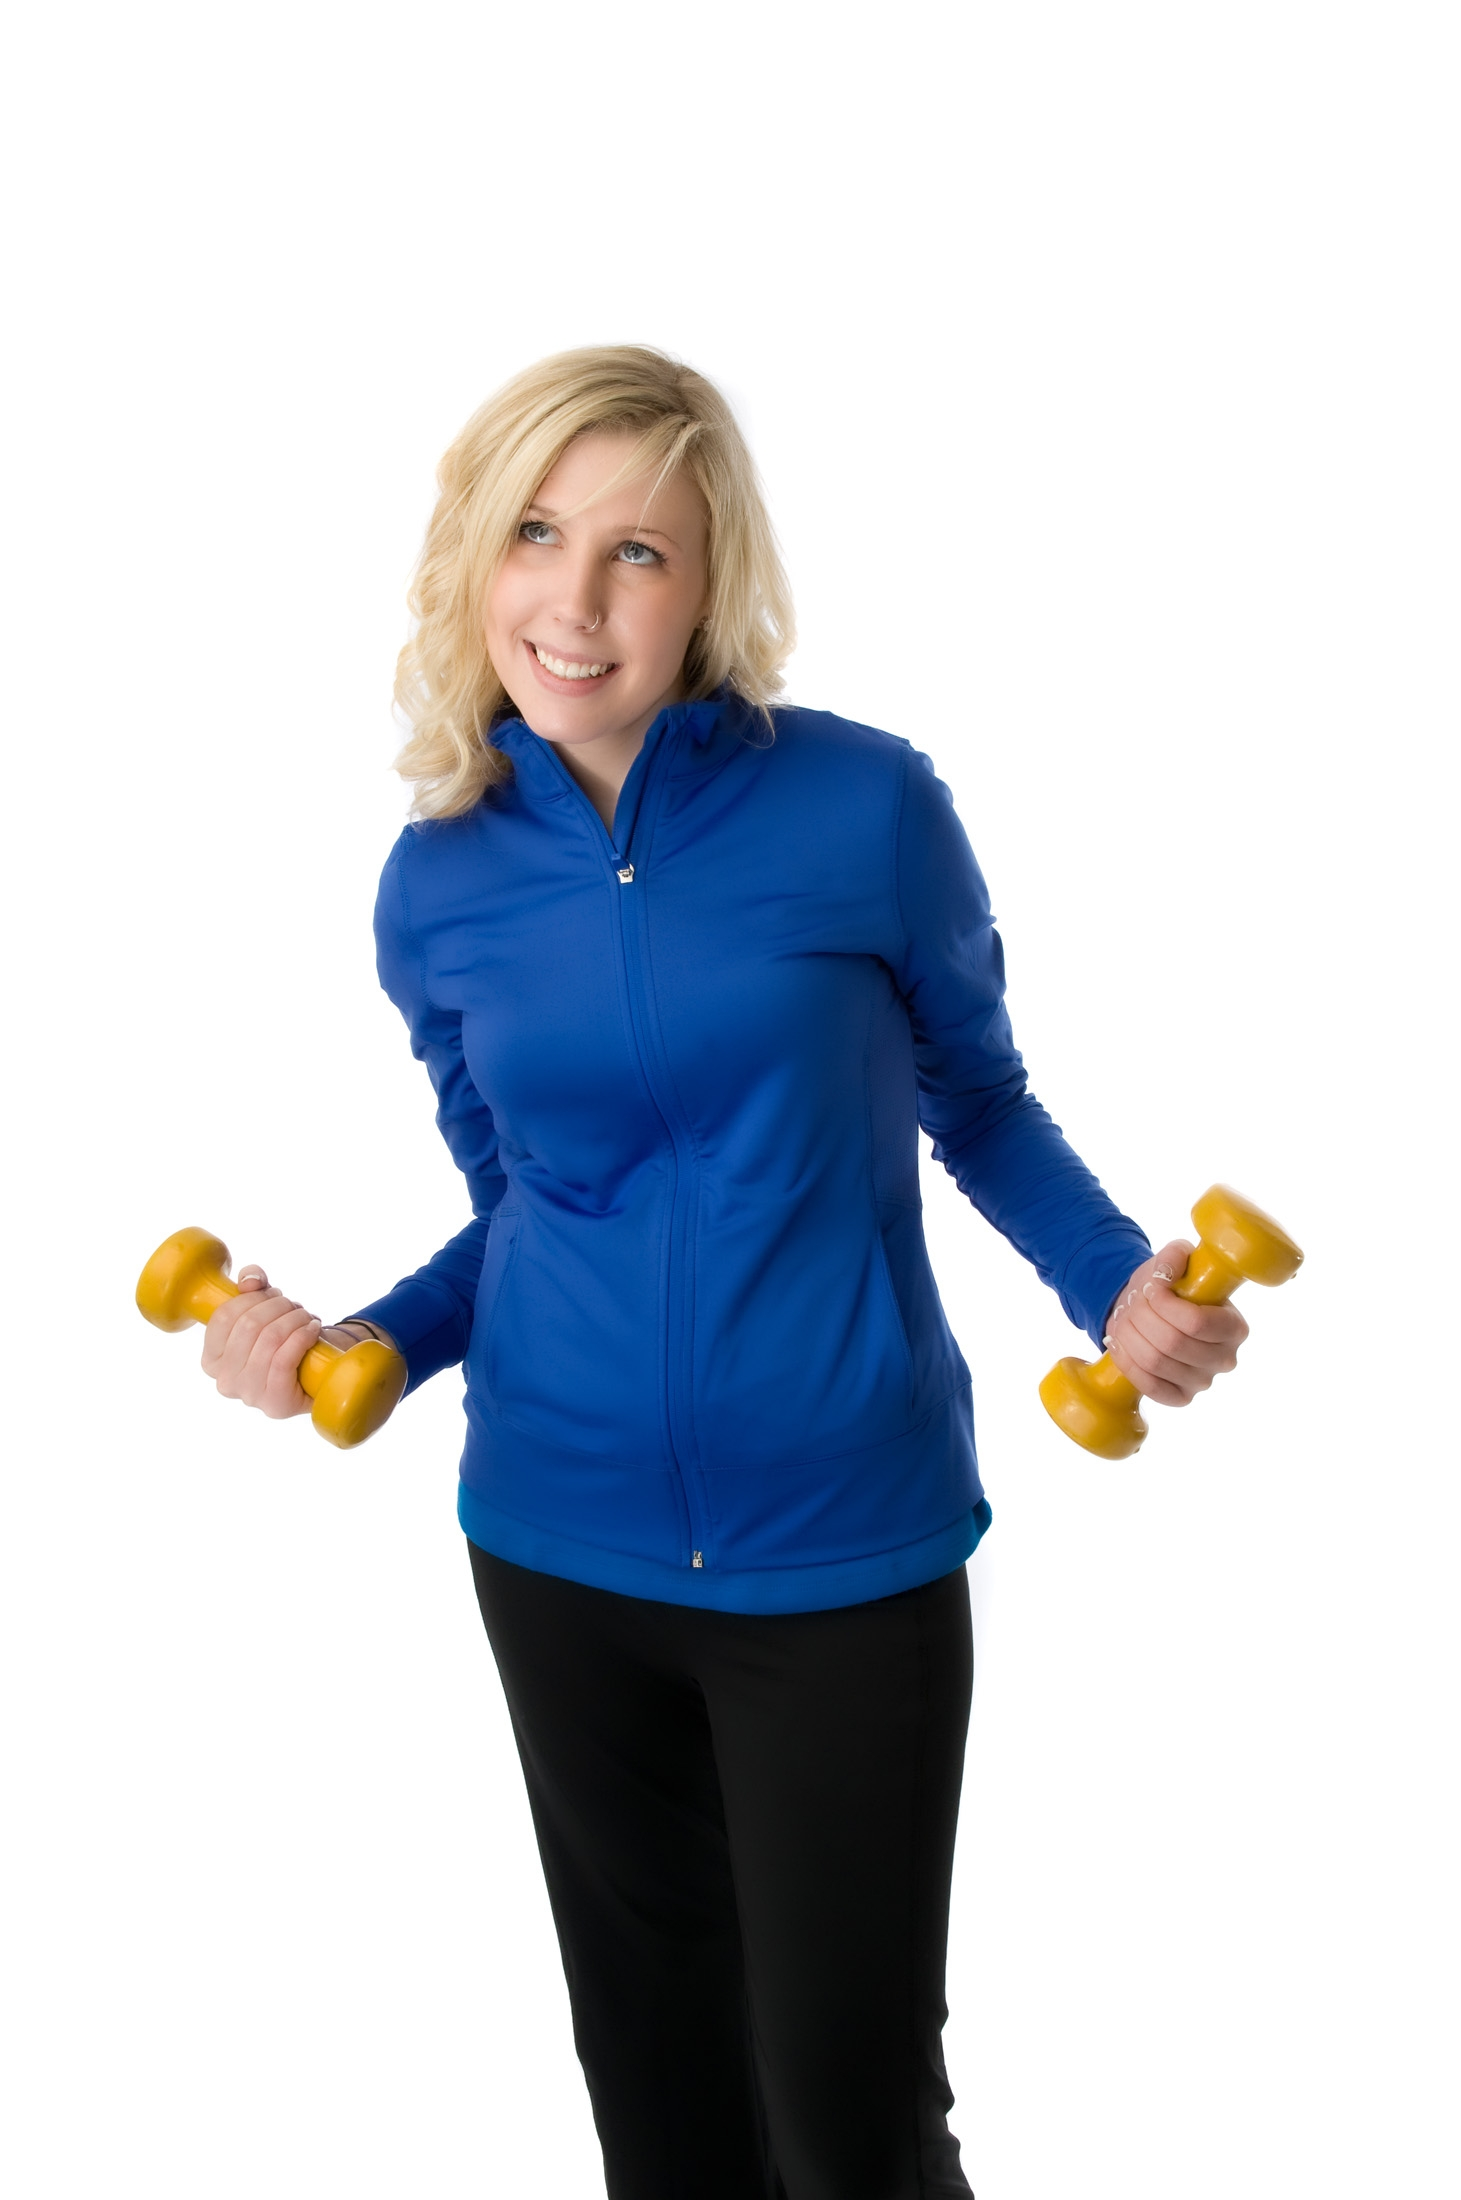 Young woman works out with small weights.